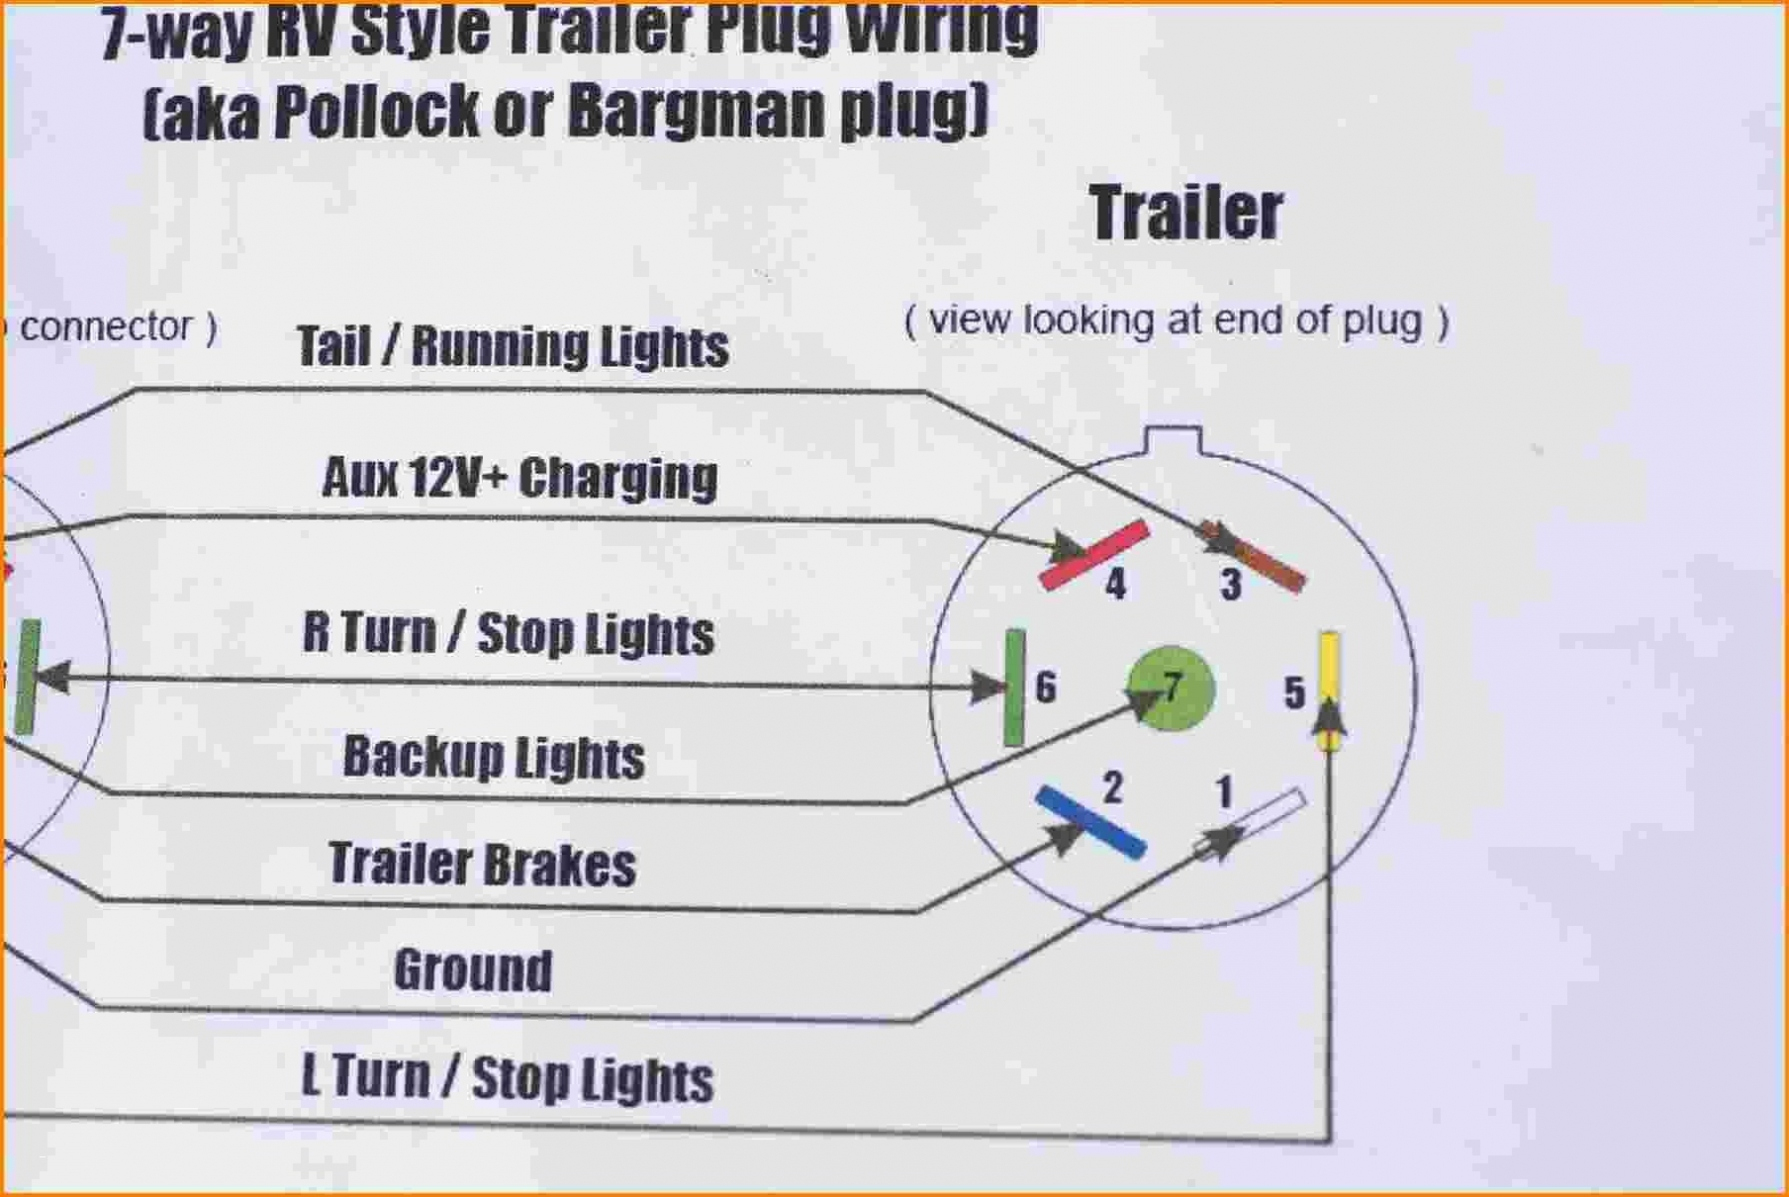 6 Round Trailer Plug Wiring Diagram | Manual E-Books - 6 Round Trailer Plug Wiring Diagram